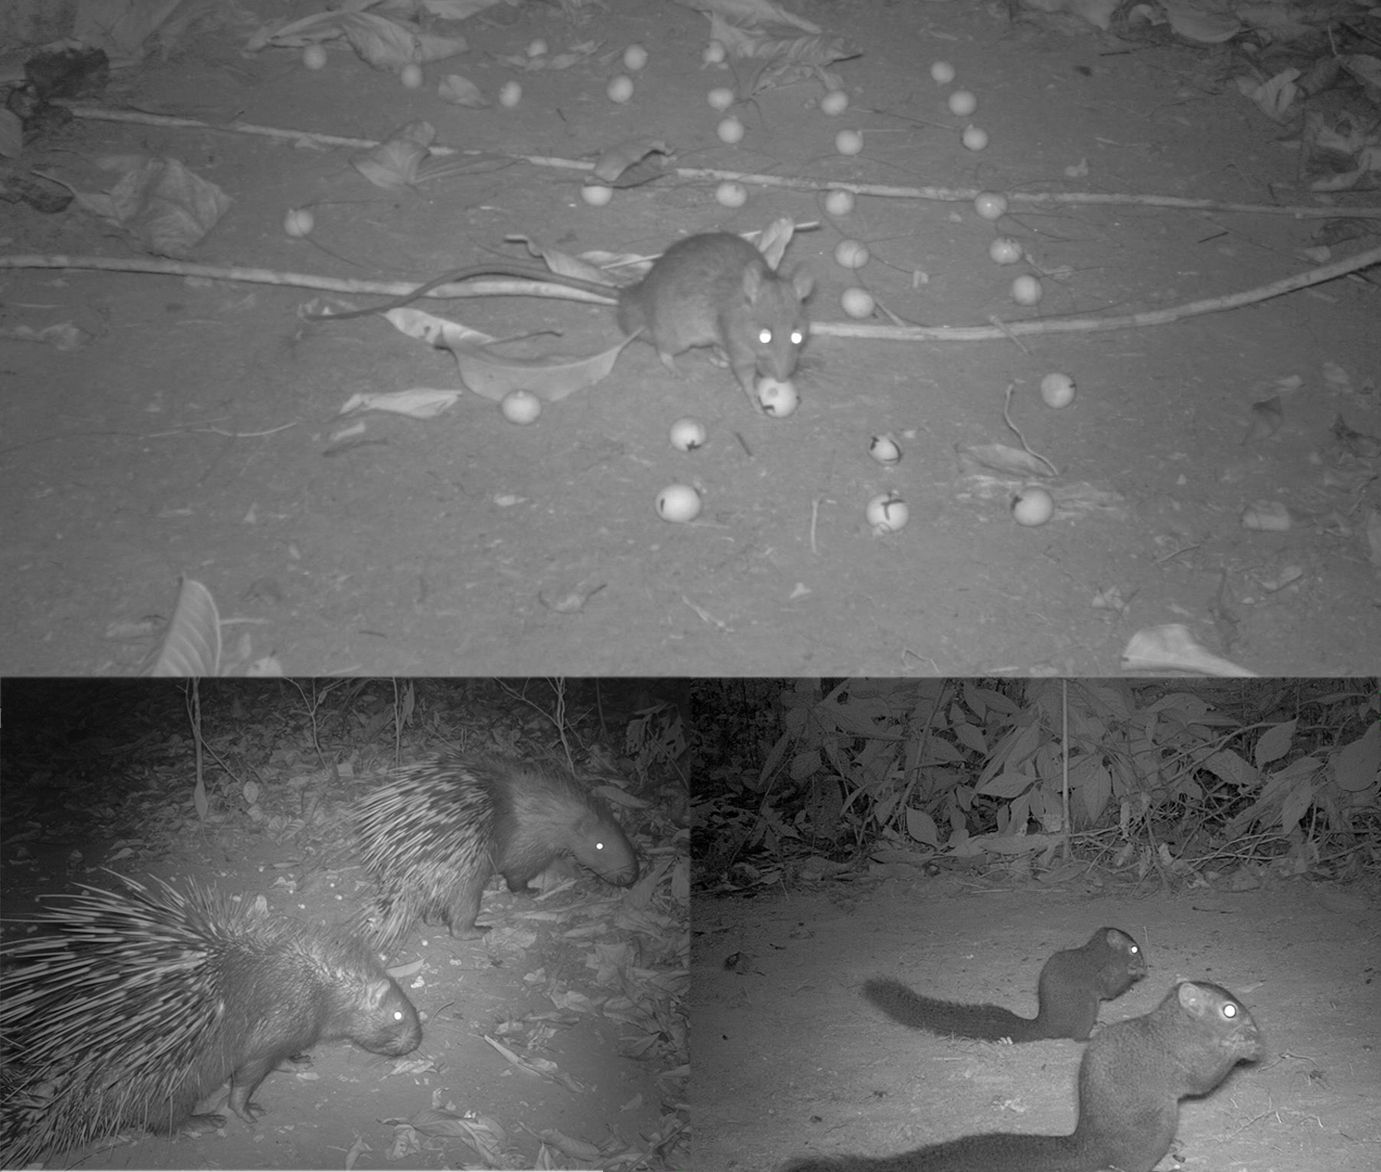 rodents seeds_camera trap